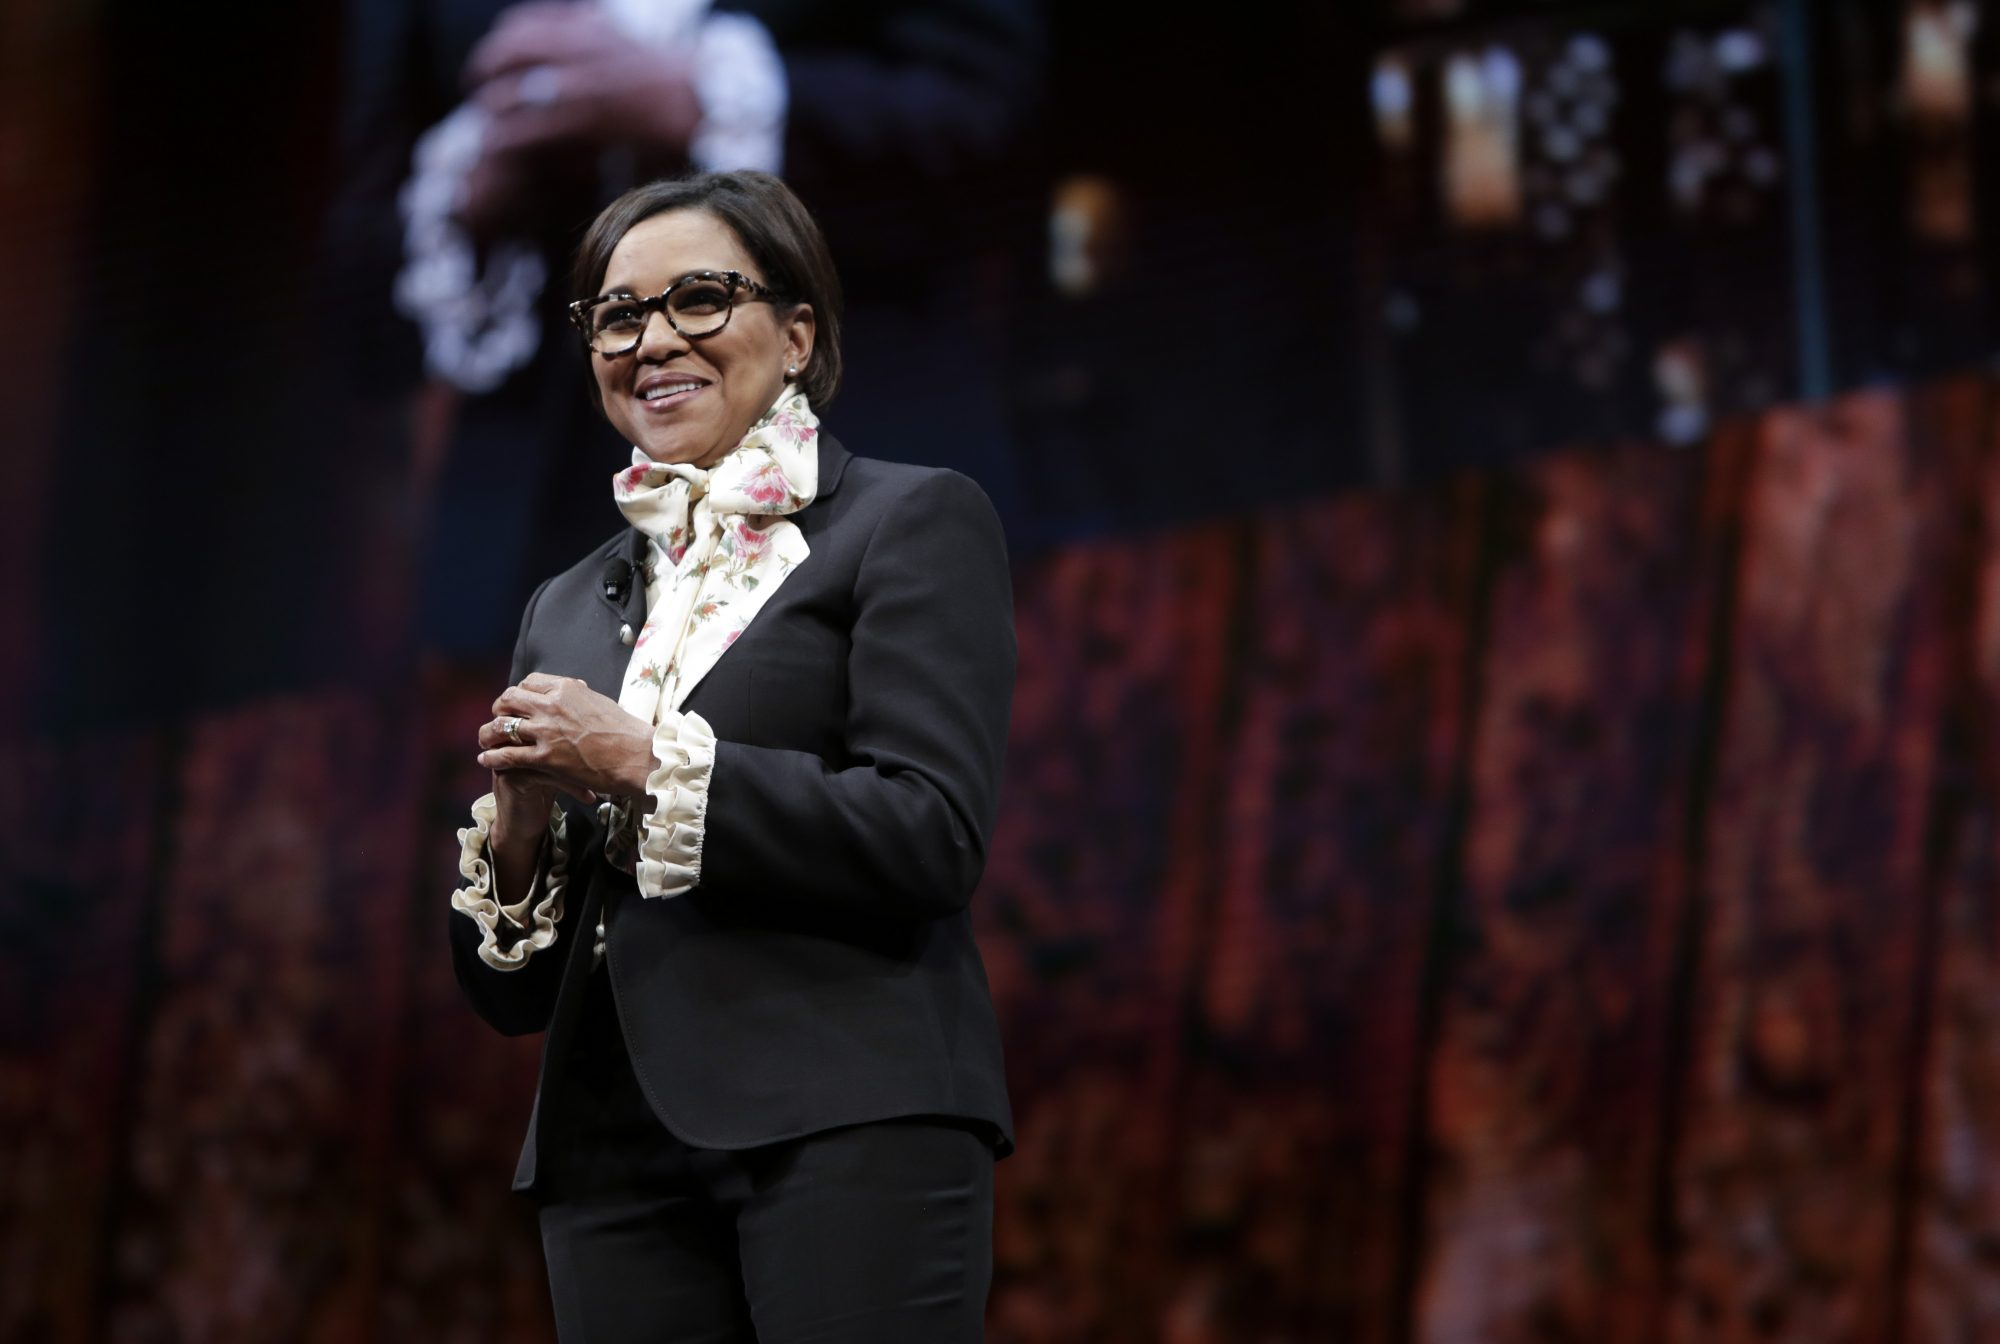 Roz Brewer, COO and Group President of Starbucks